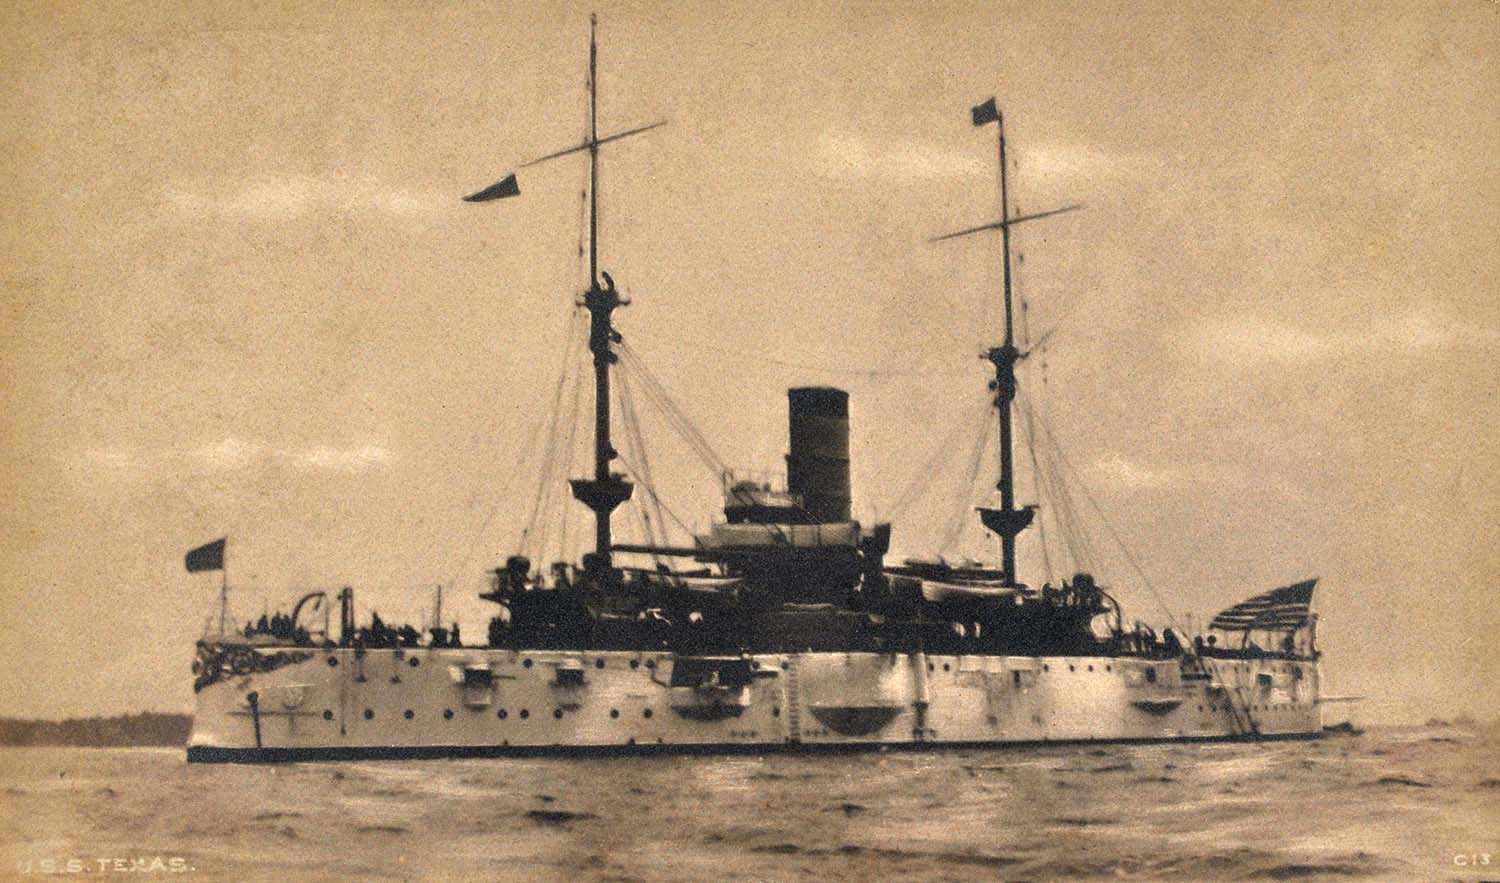 uss texas postcard by the rotograph company of new york (hampton roads  naval museum collection)